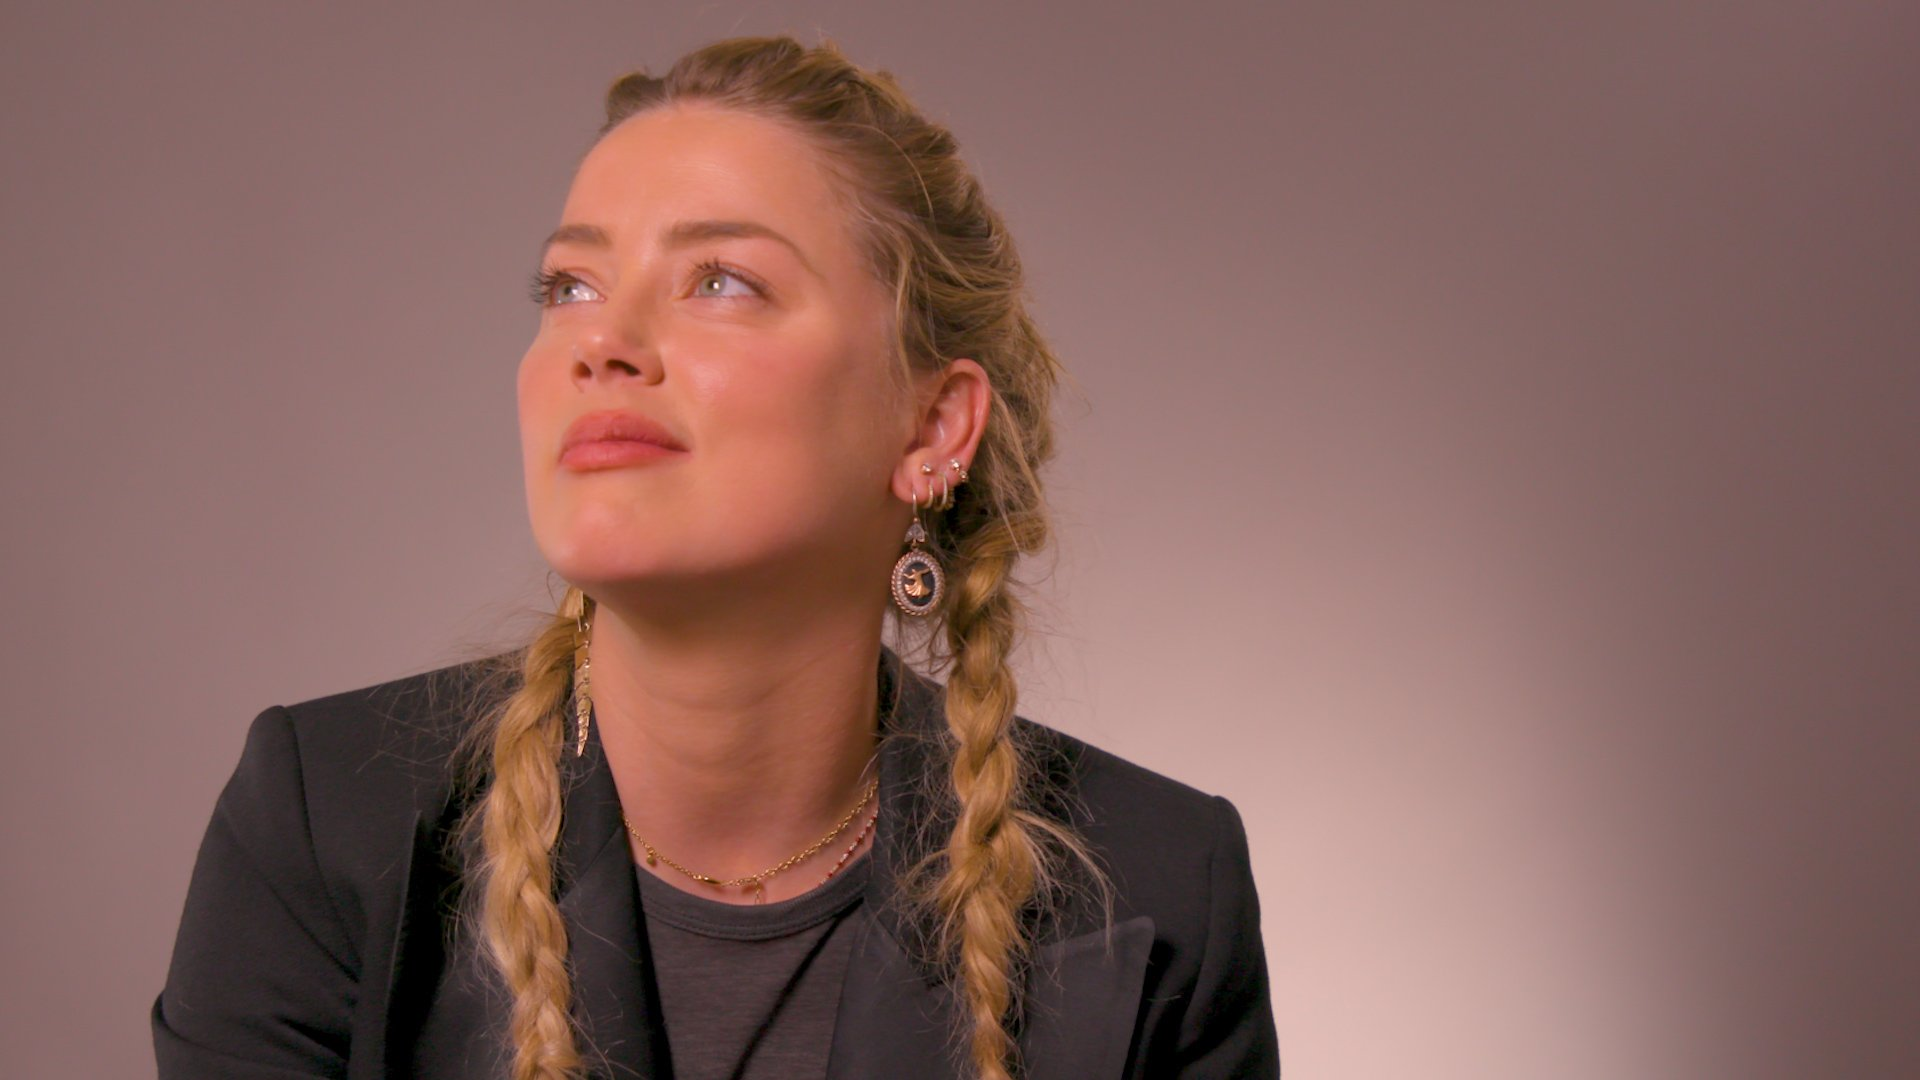 """Thrive Diary: Actress and Activist Amber Heard Shares How She Thrives Through Life's """"Sink or Swim"""" Moments"""